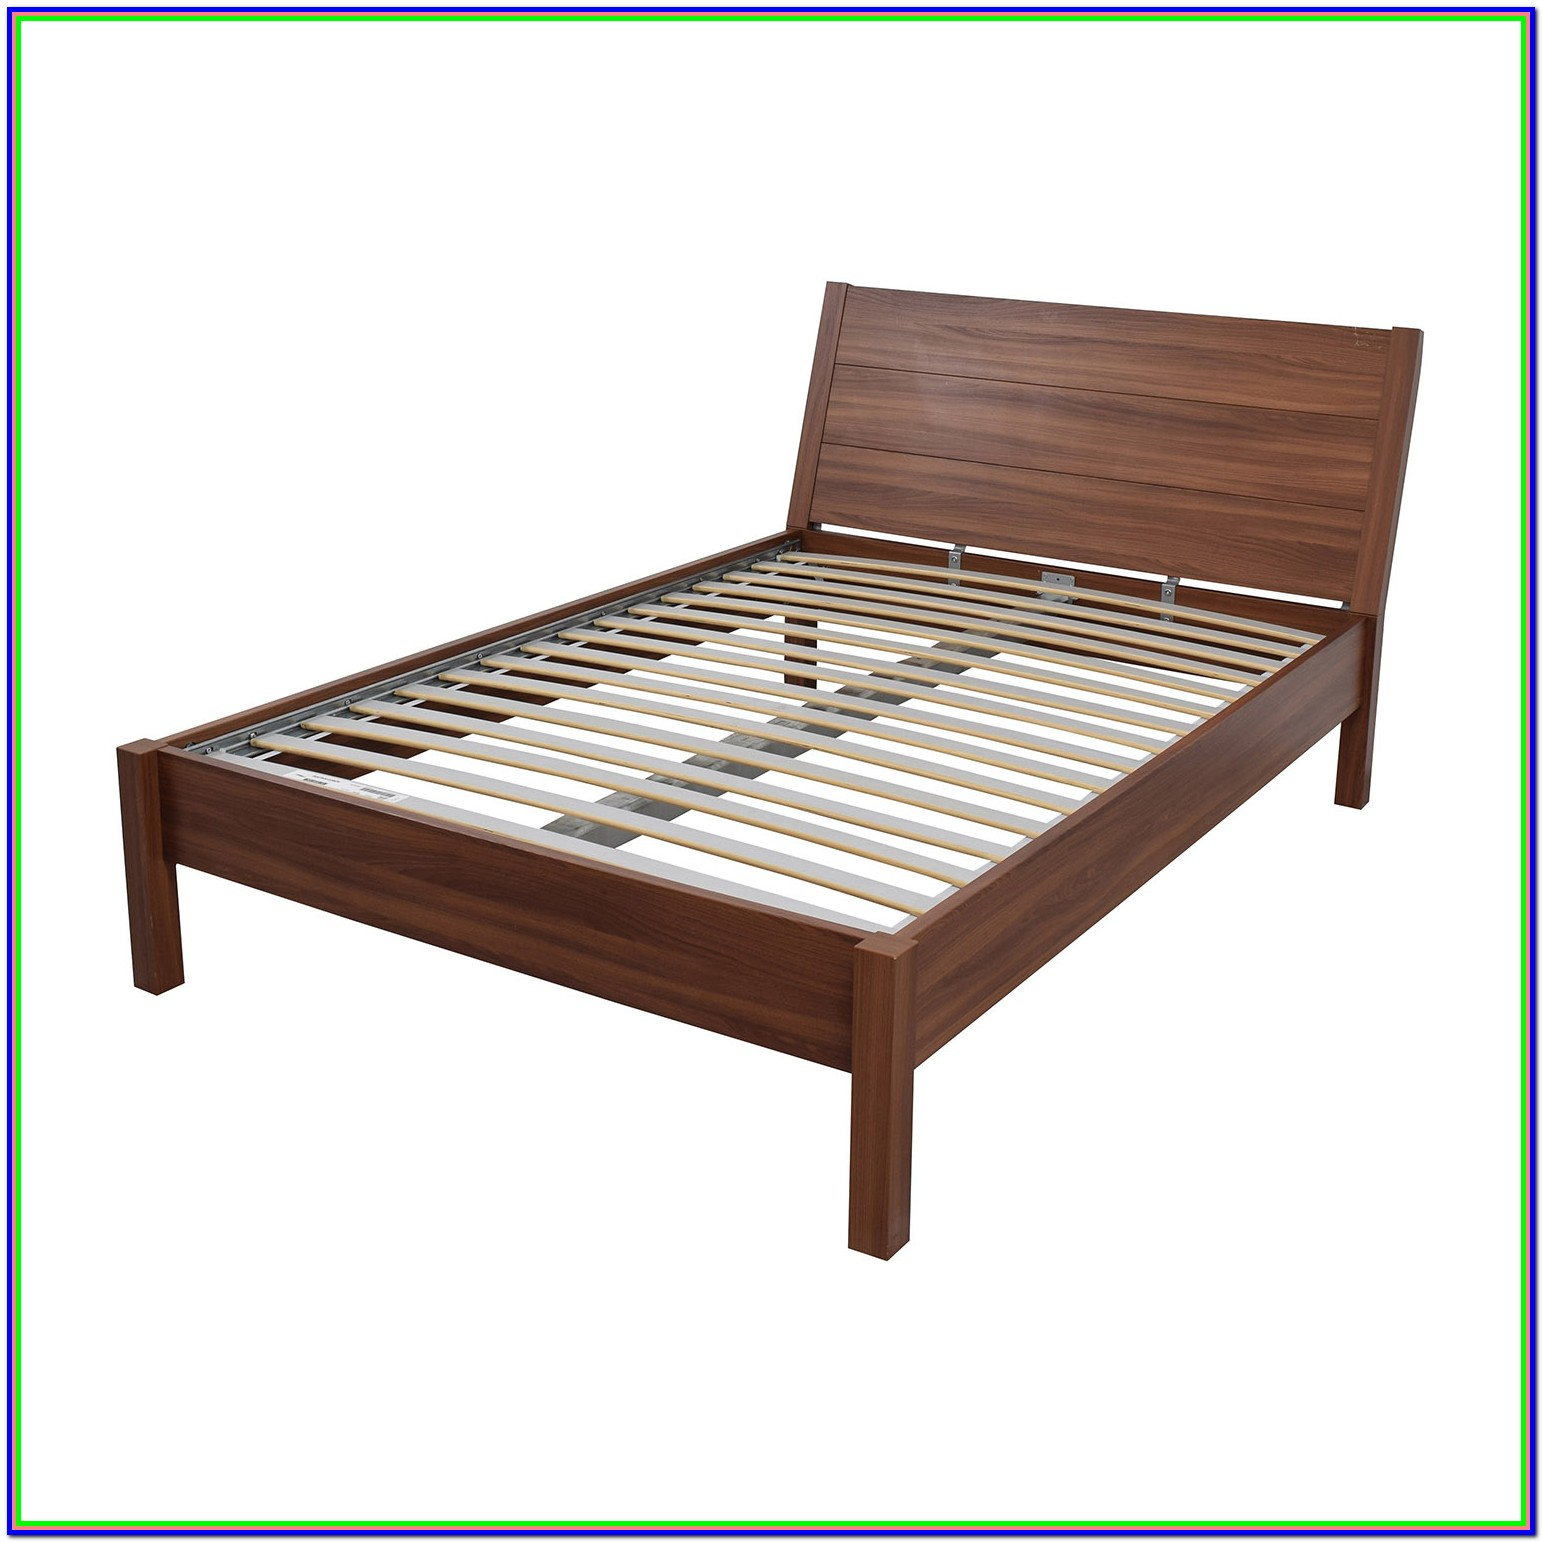 Wooden Queen Platform Bed Frame